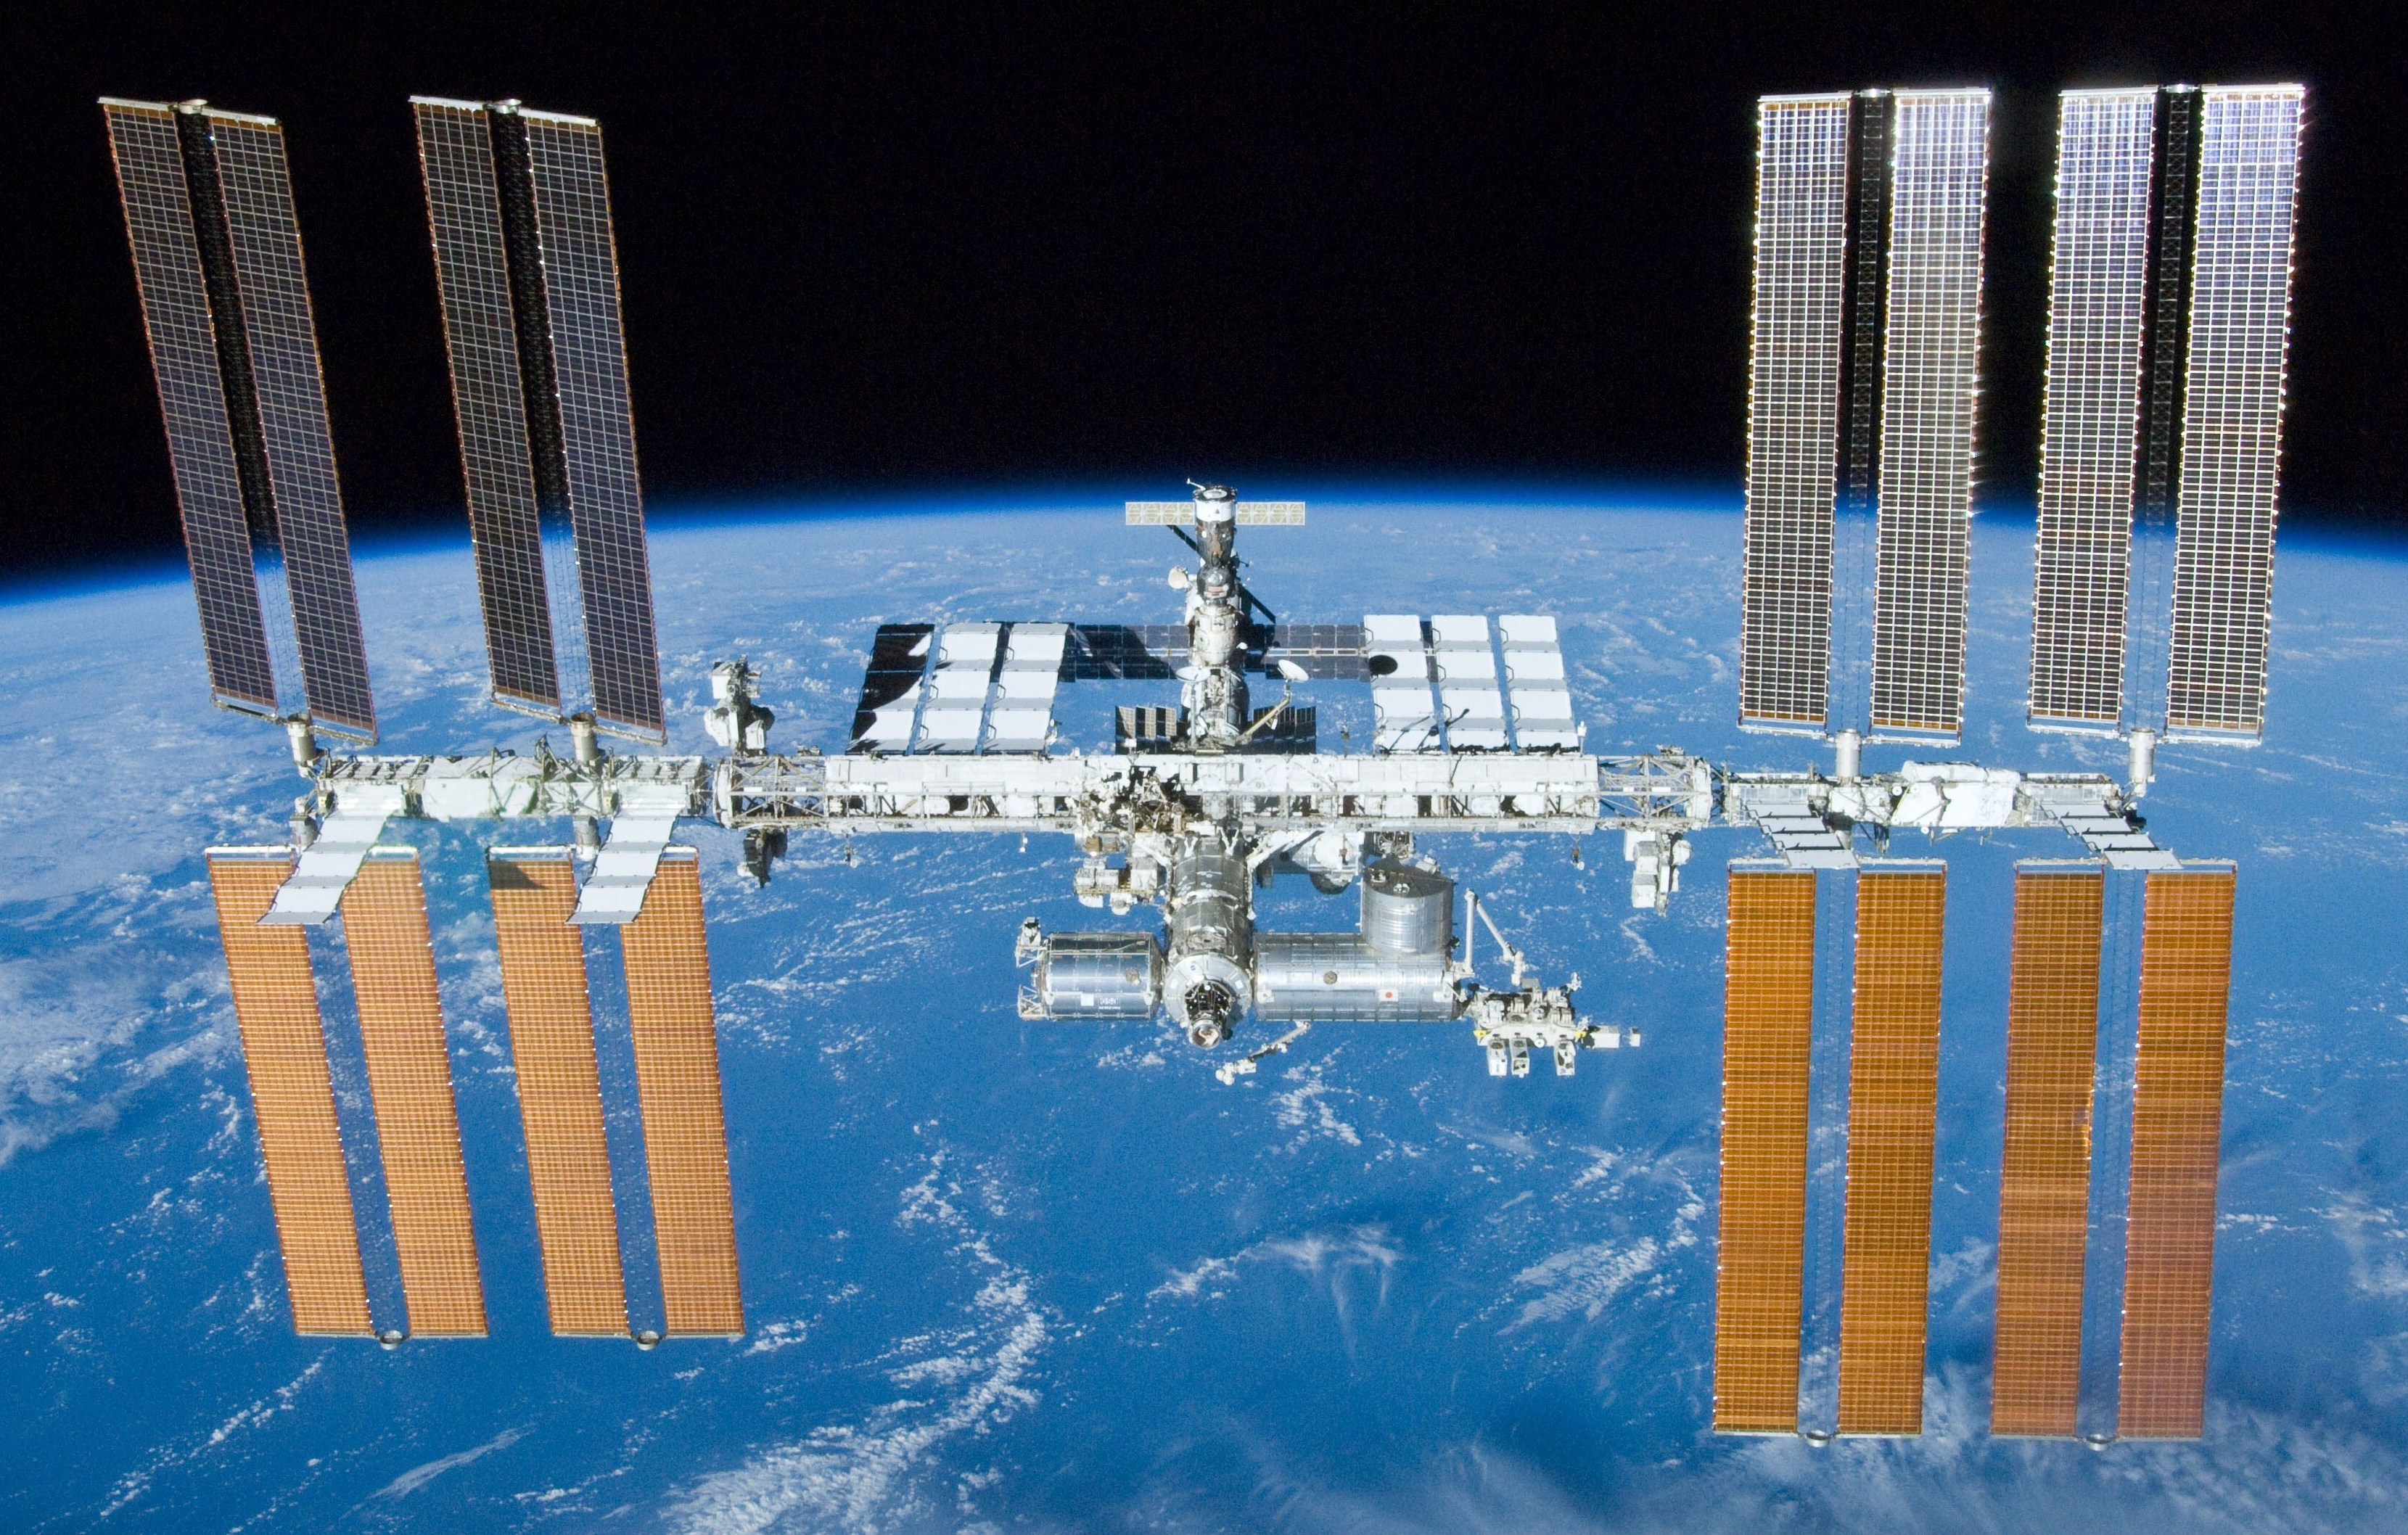 The International Space Station represents a modern engineering challenge from many disciplines.